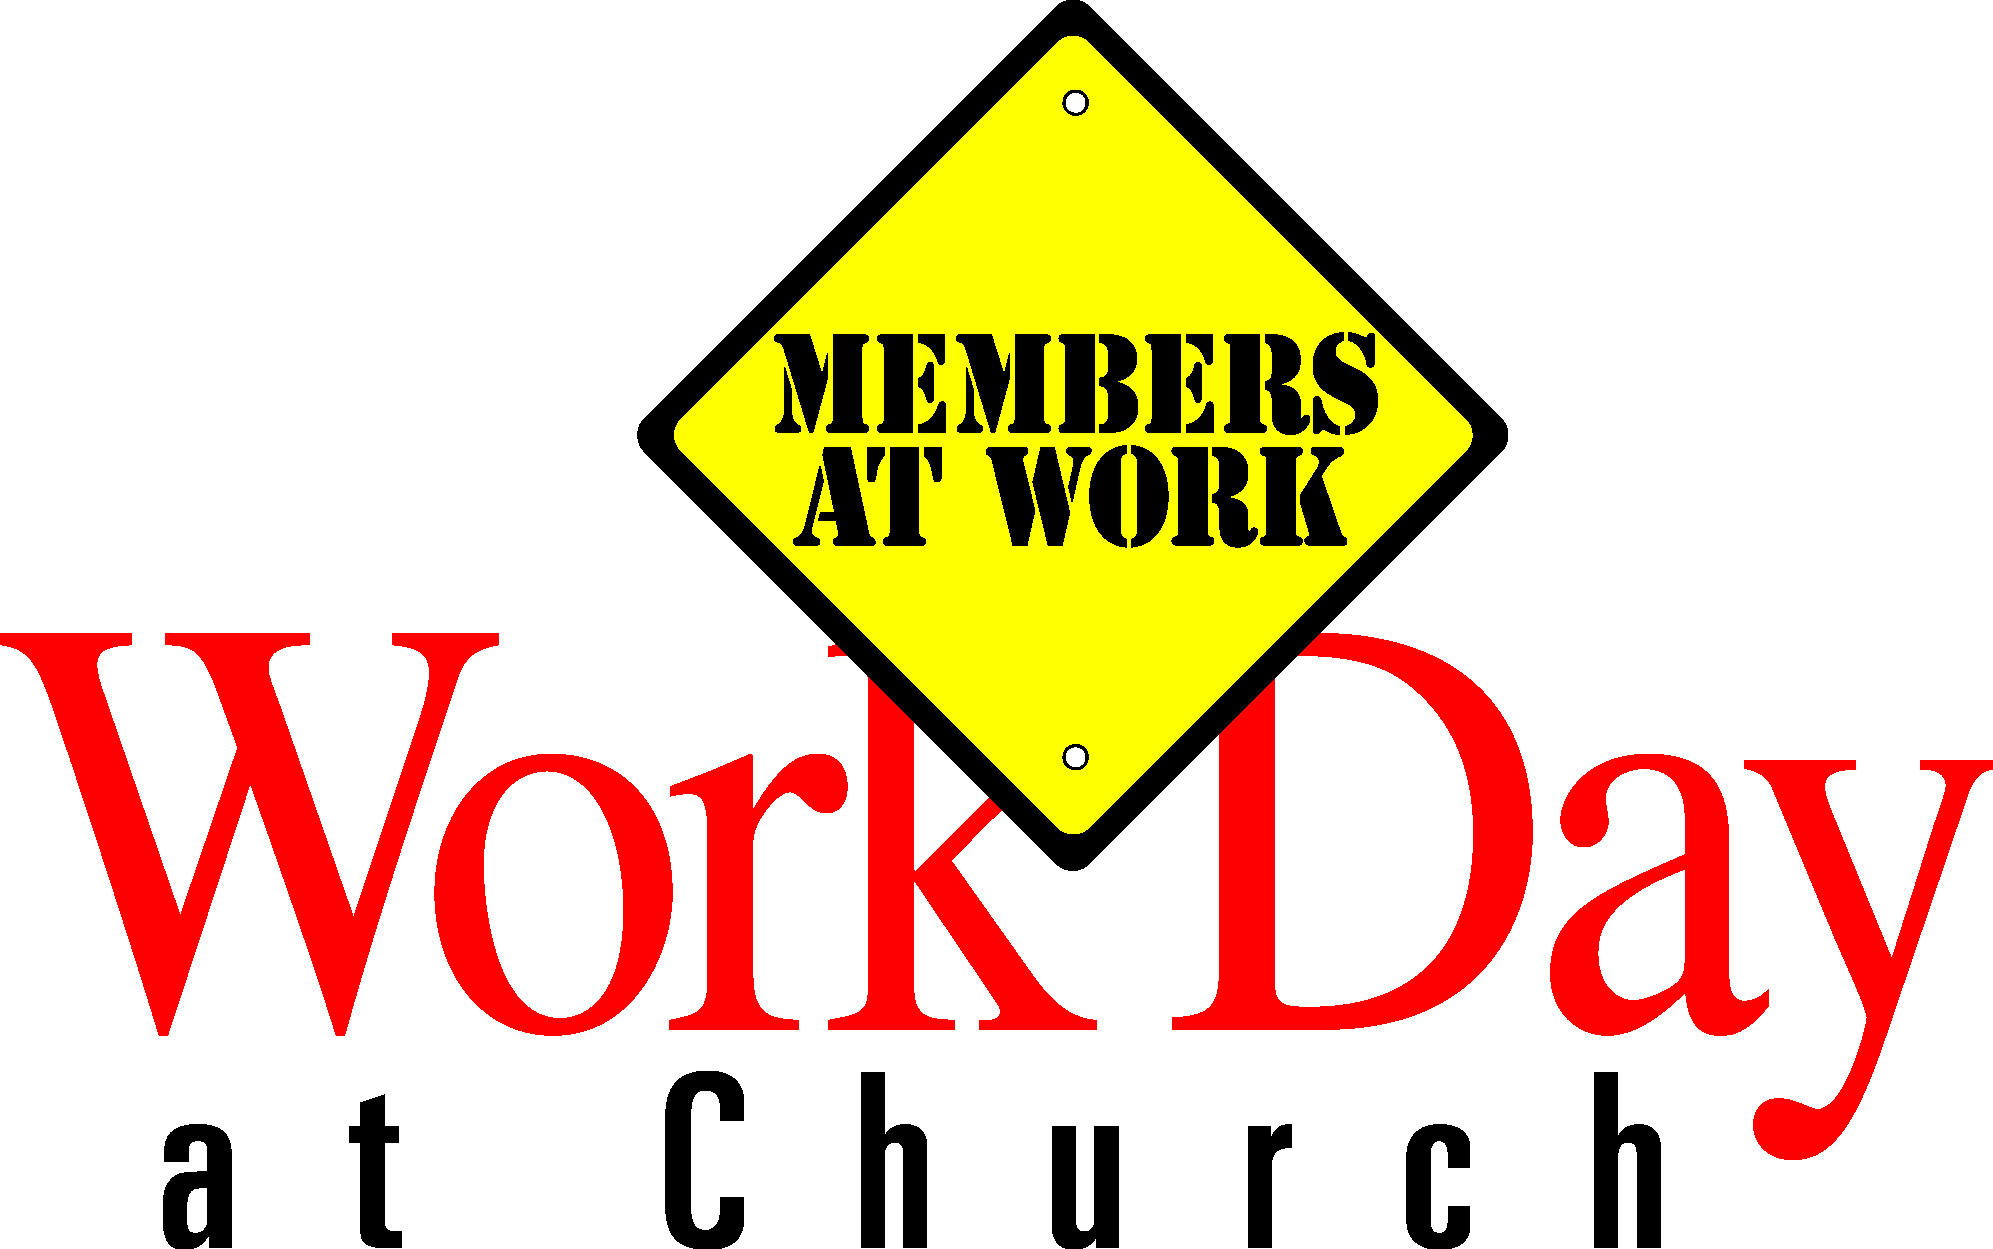 Church Work Day Clean Up Clip Art free image.